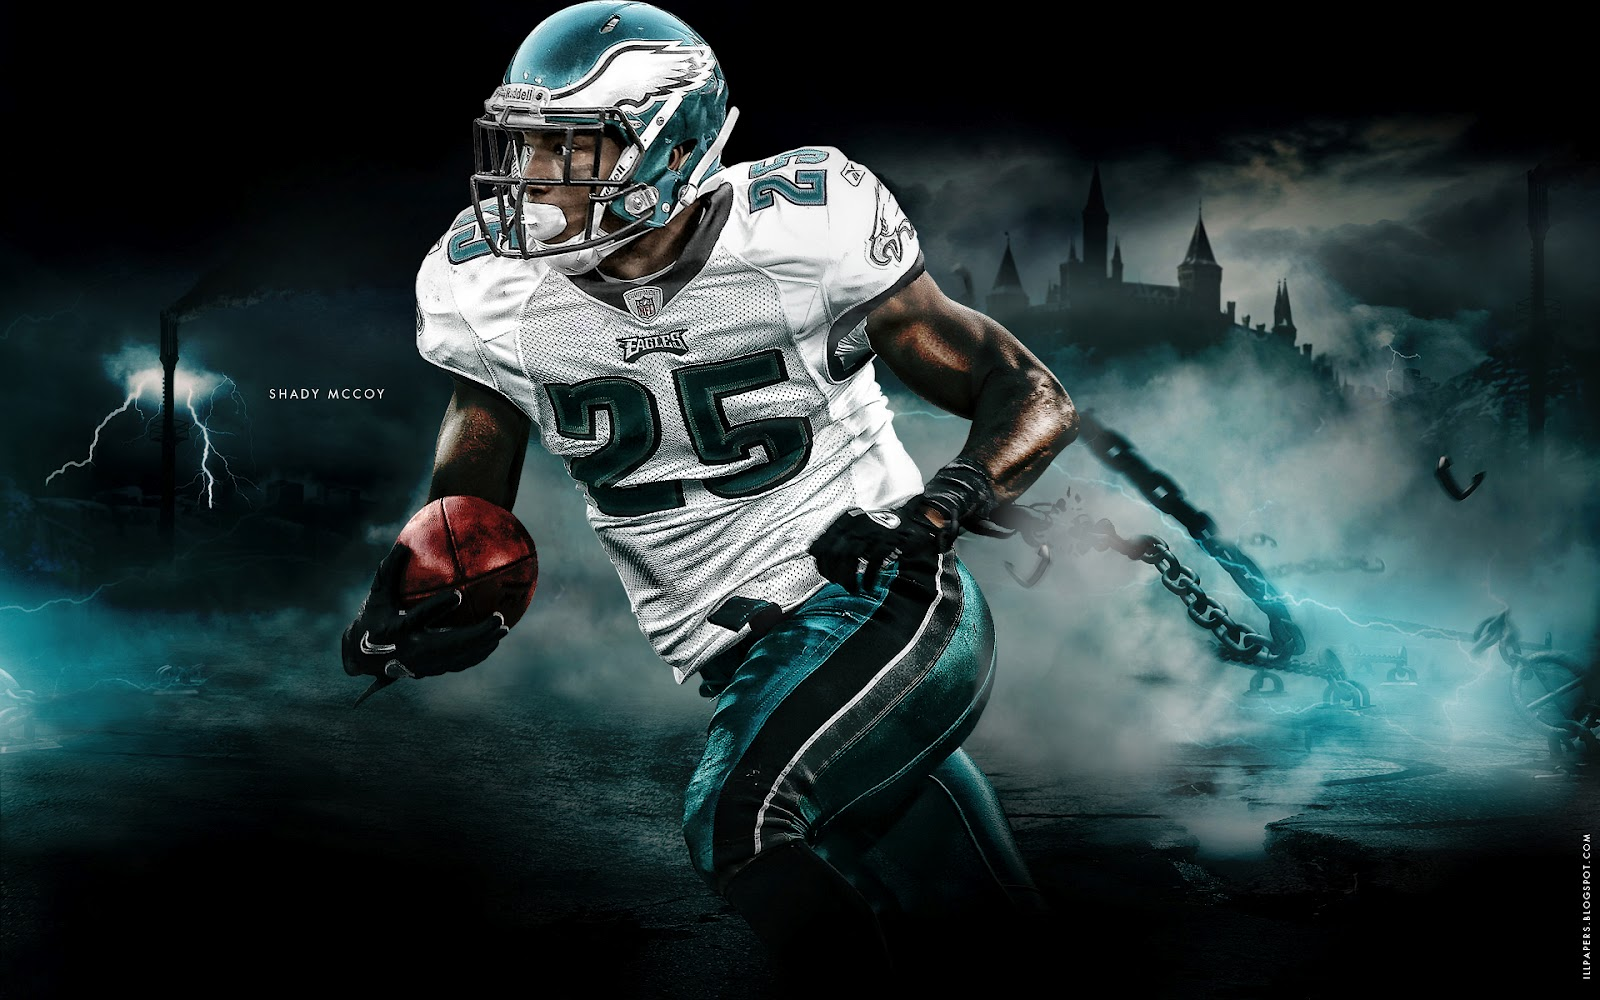 Cool Nfl Player Edits: ILLPAPERS: Sports Highlights, News, Videos, Wallpapers